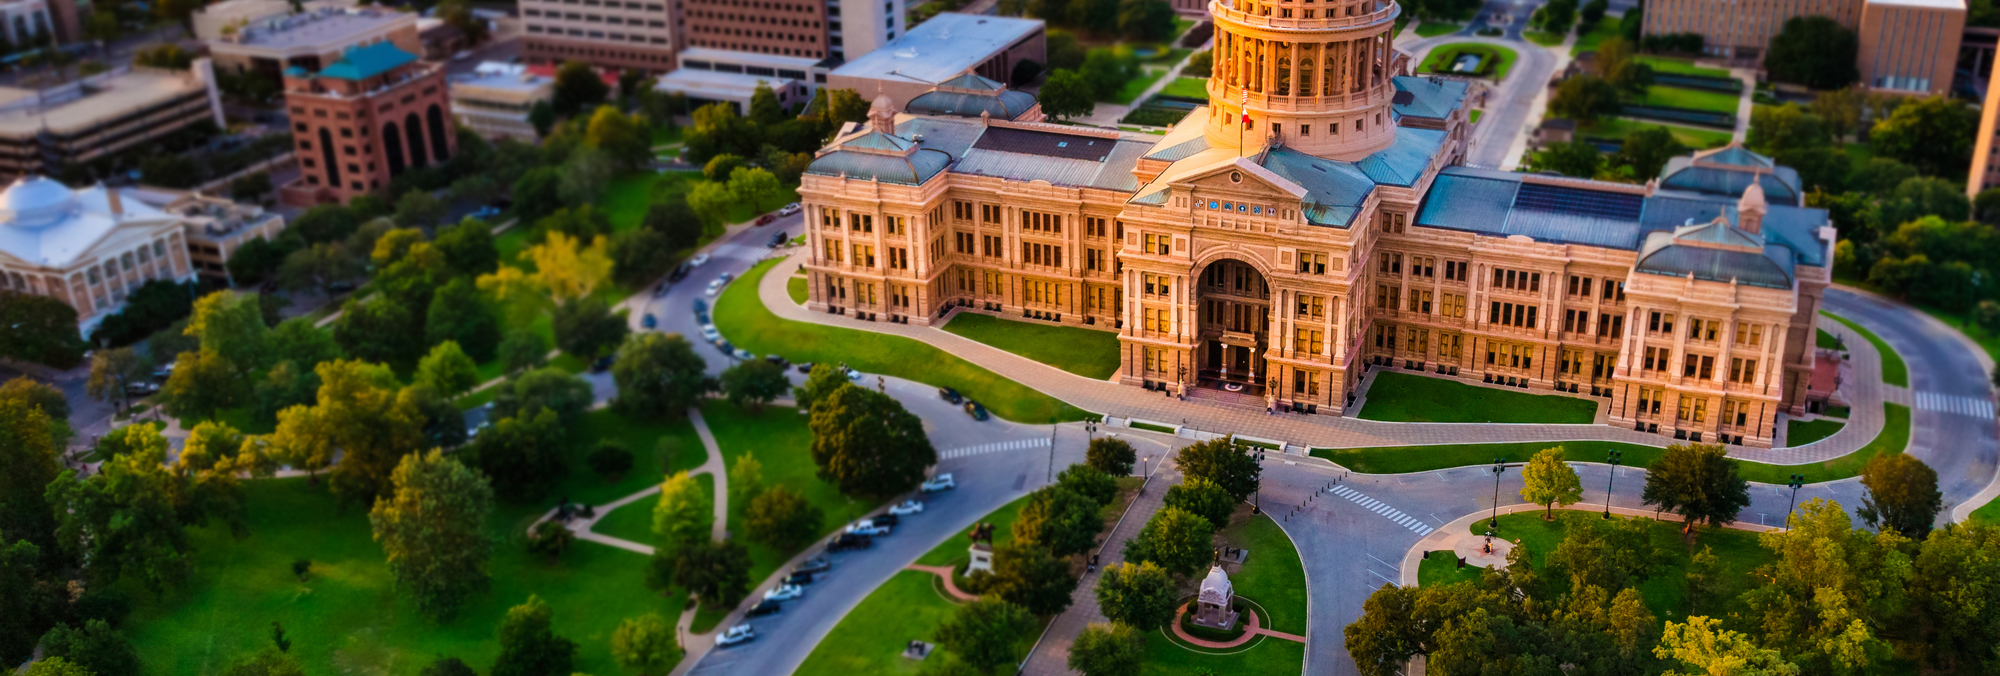 Texas Council of Administrators of Special Education